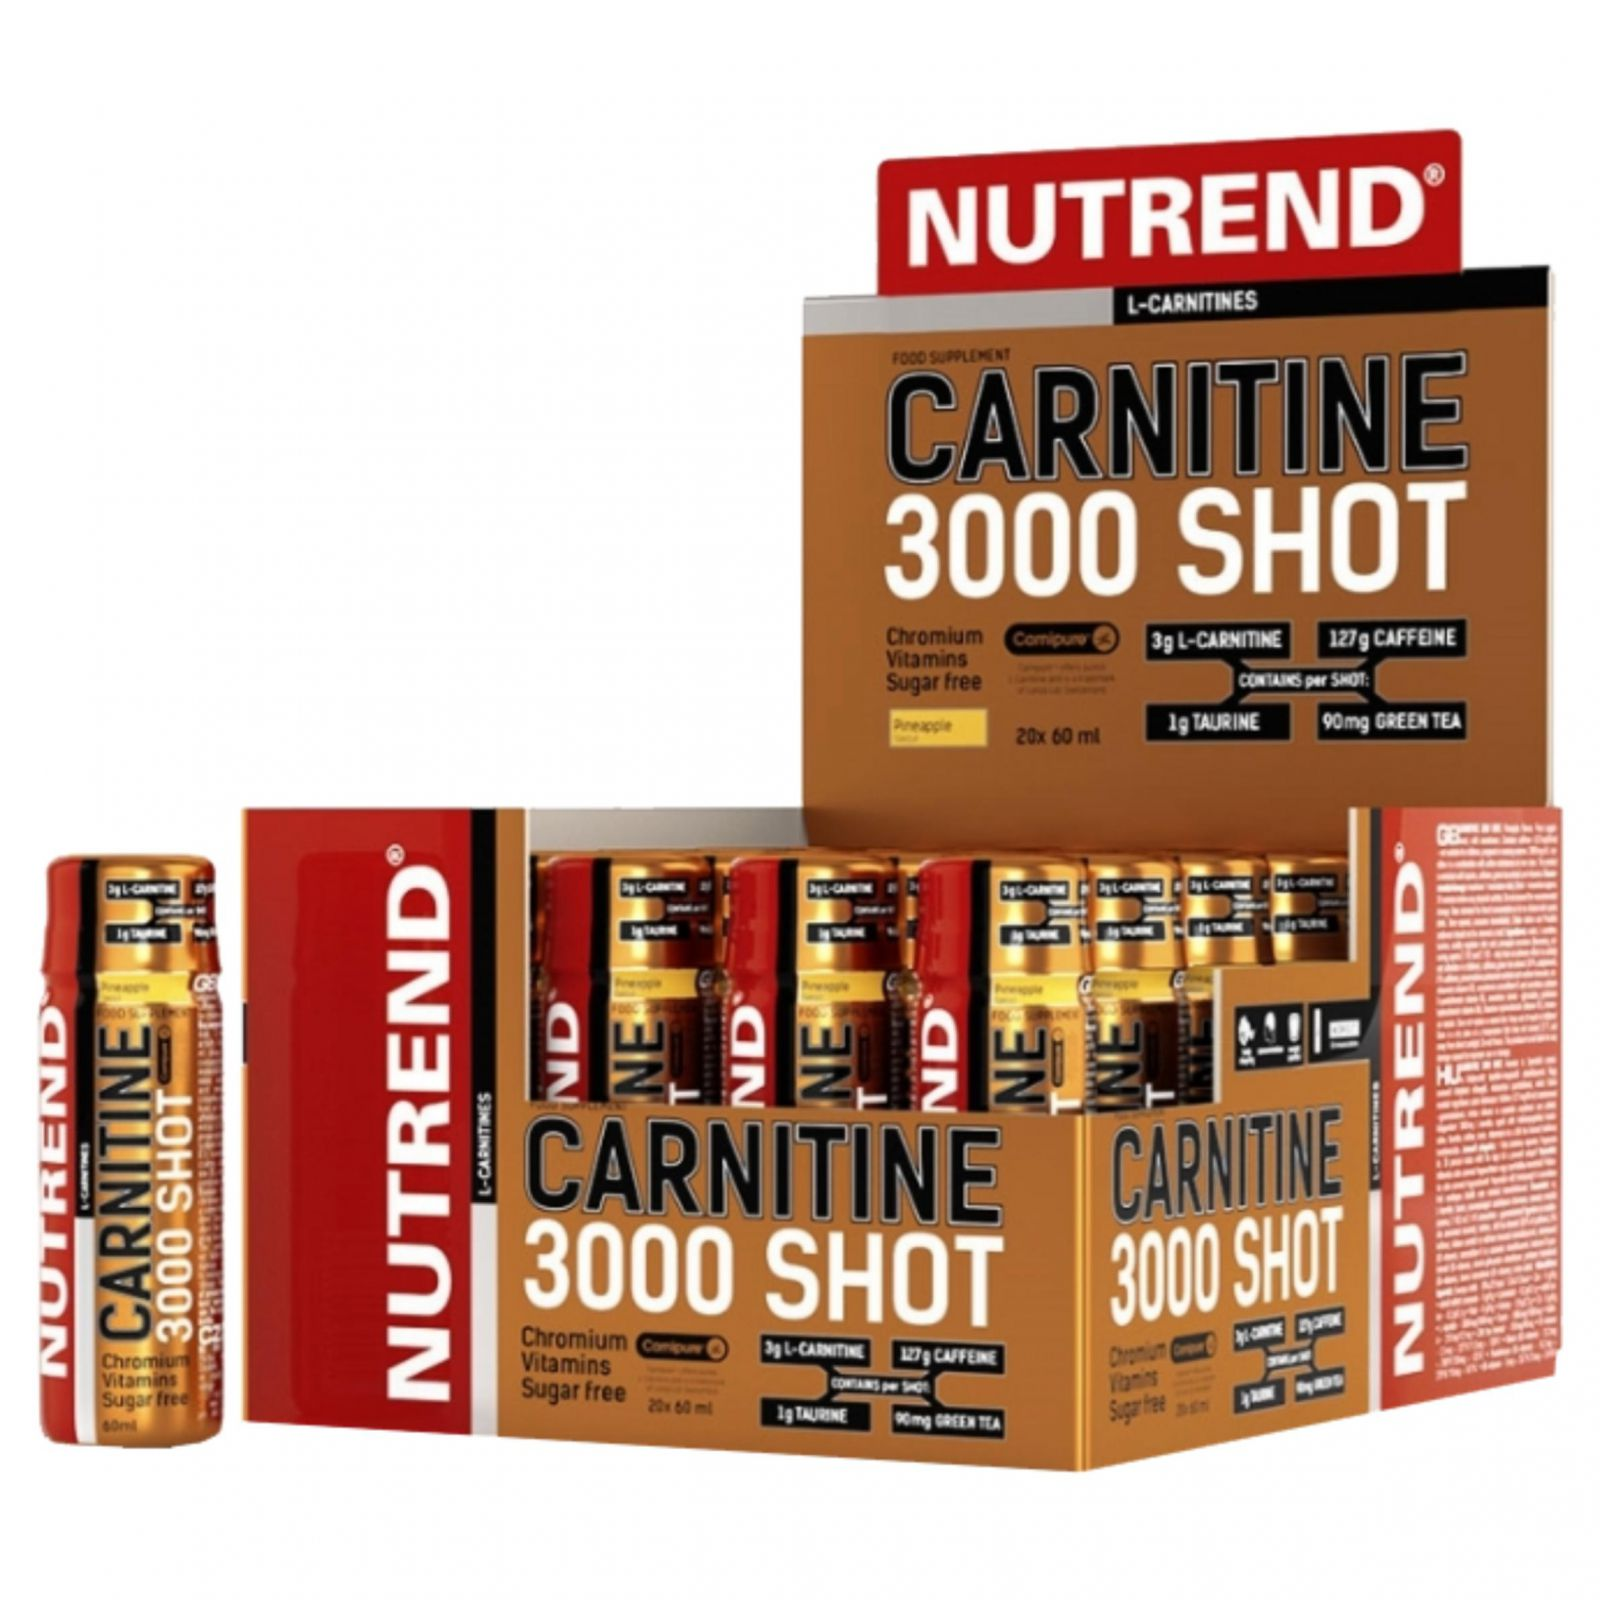 Nutrend carnitime 3000 shot - 20 x 60 ml